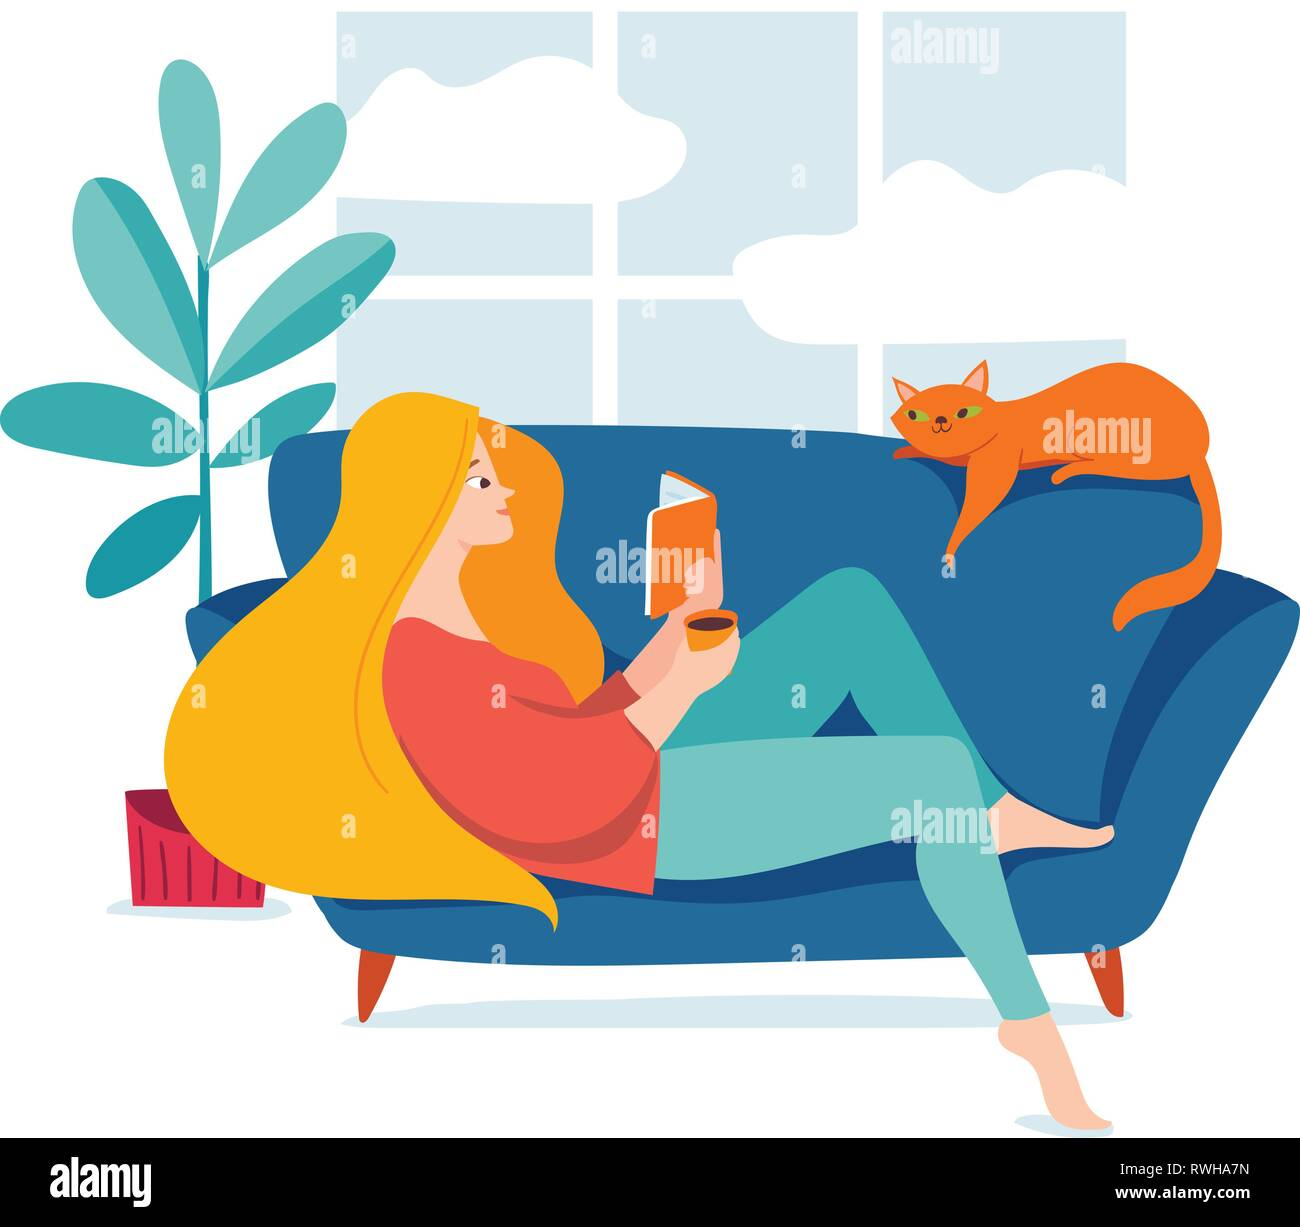 Hygge illustration with a womal reading a book - Stock Image